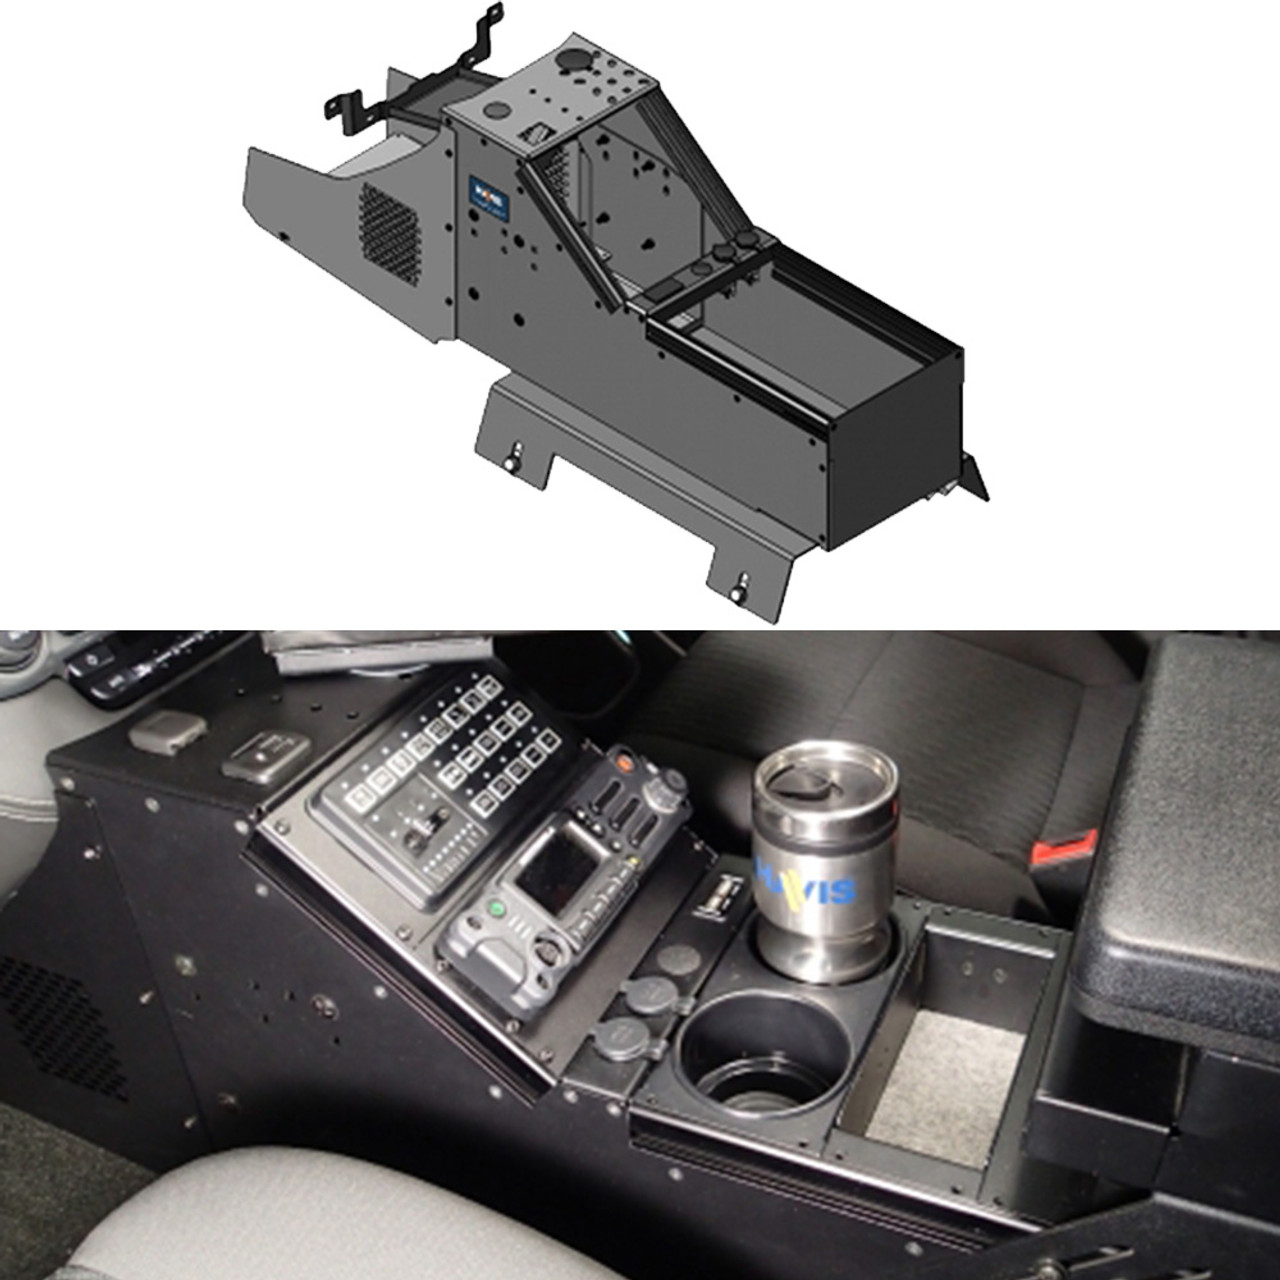 hight resolution of havis c vs 0812 tah 1 20 inch vehicle specific console for